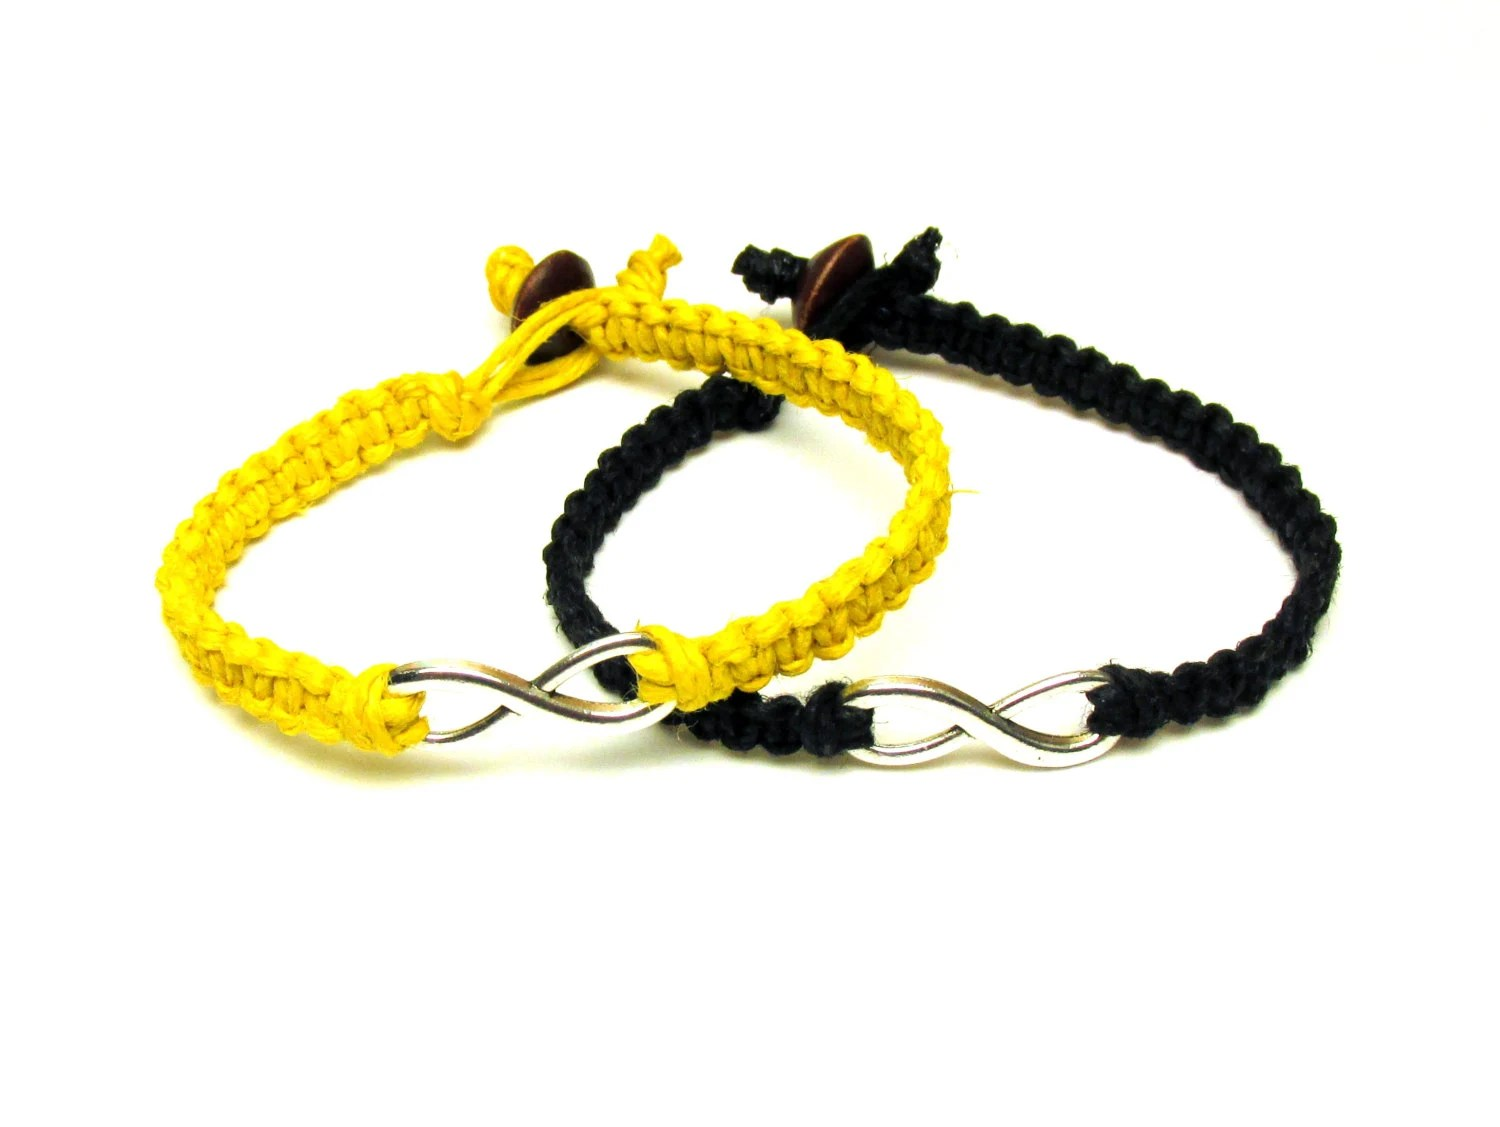 Infinity Bracelets Set of Two, Bright Yellow and Black Macrame Hemp Jewelry for Couples or Best Friends - MandarrCreations